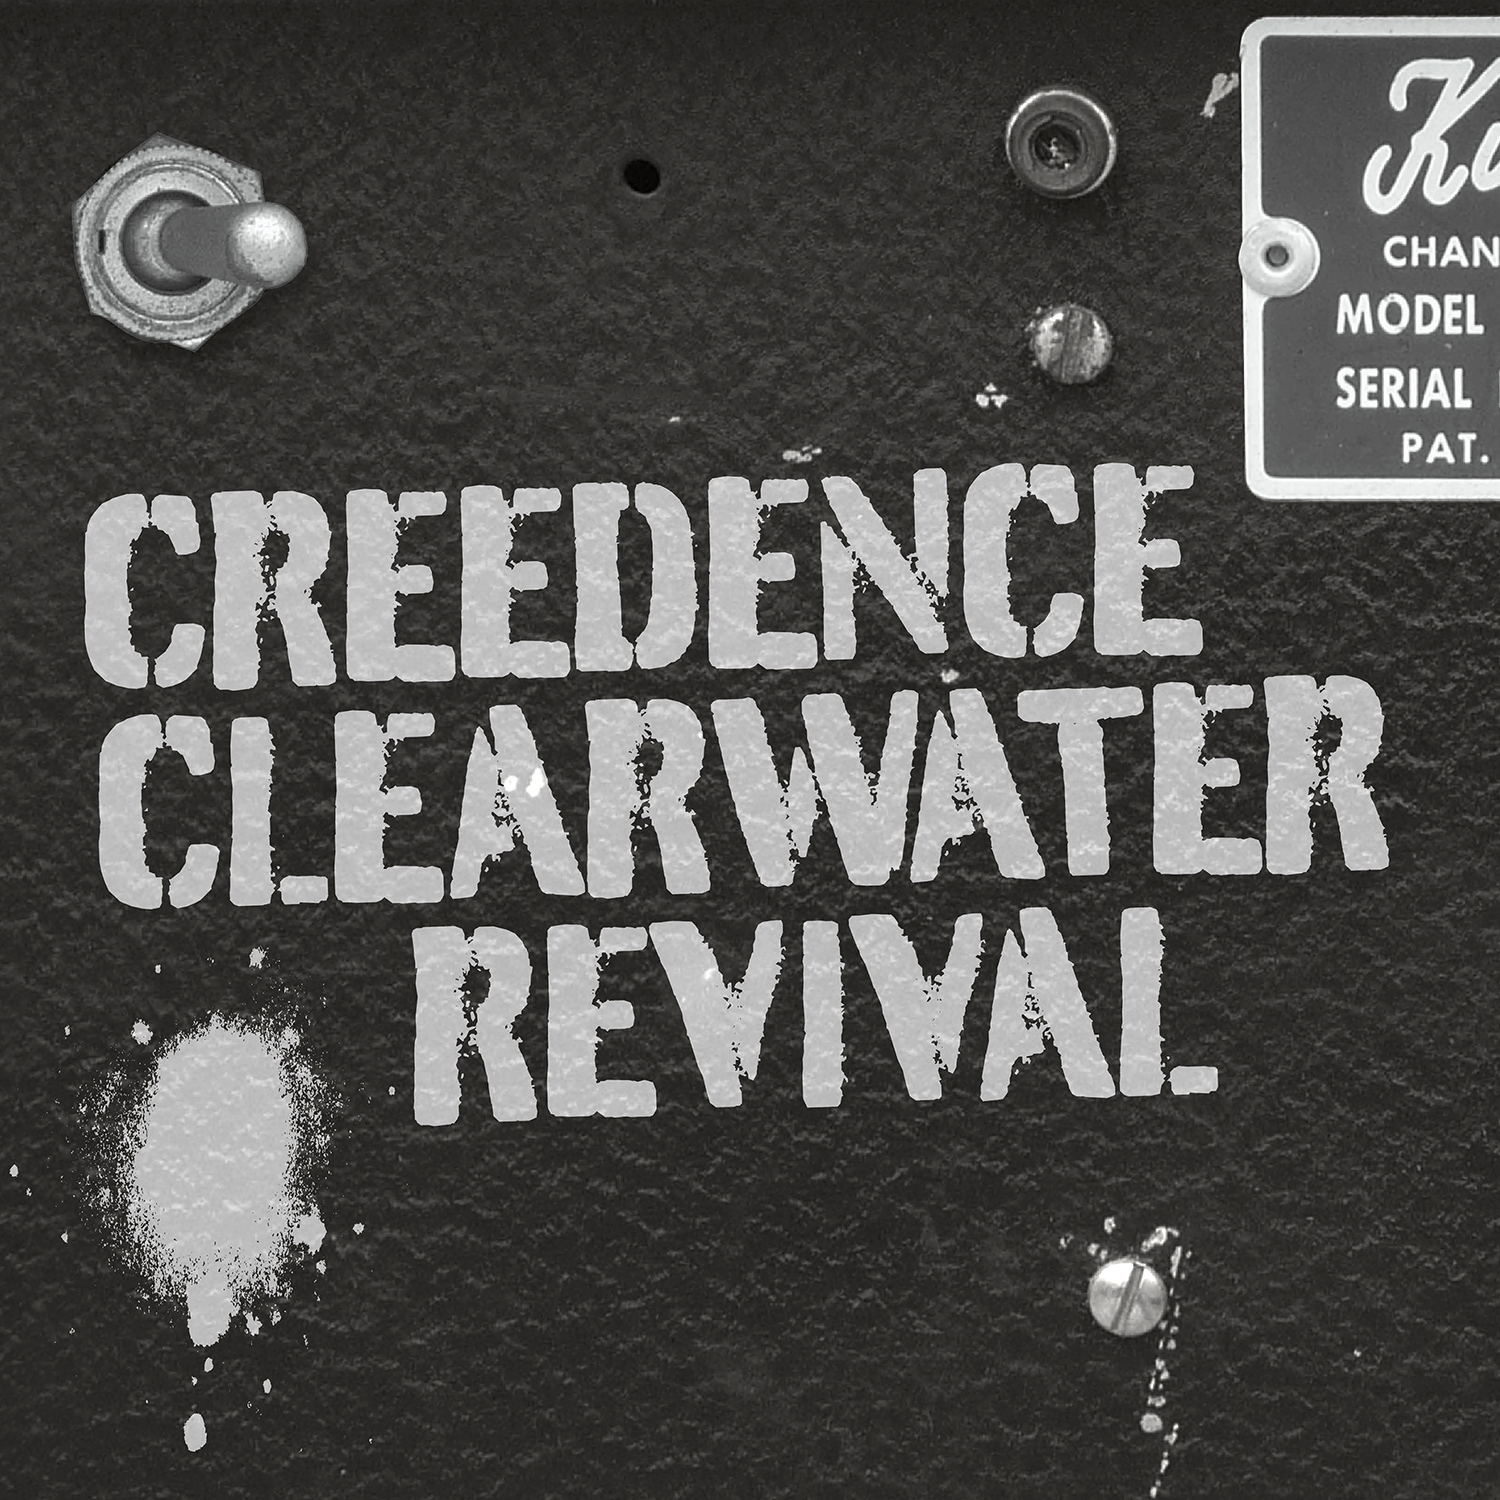 Creedence Clearwater Revival - Travellin' Band - The Easy Rider Generation In Concert